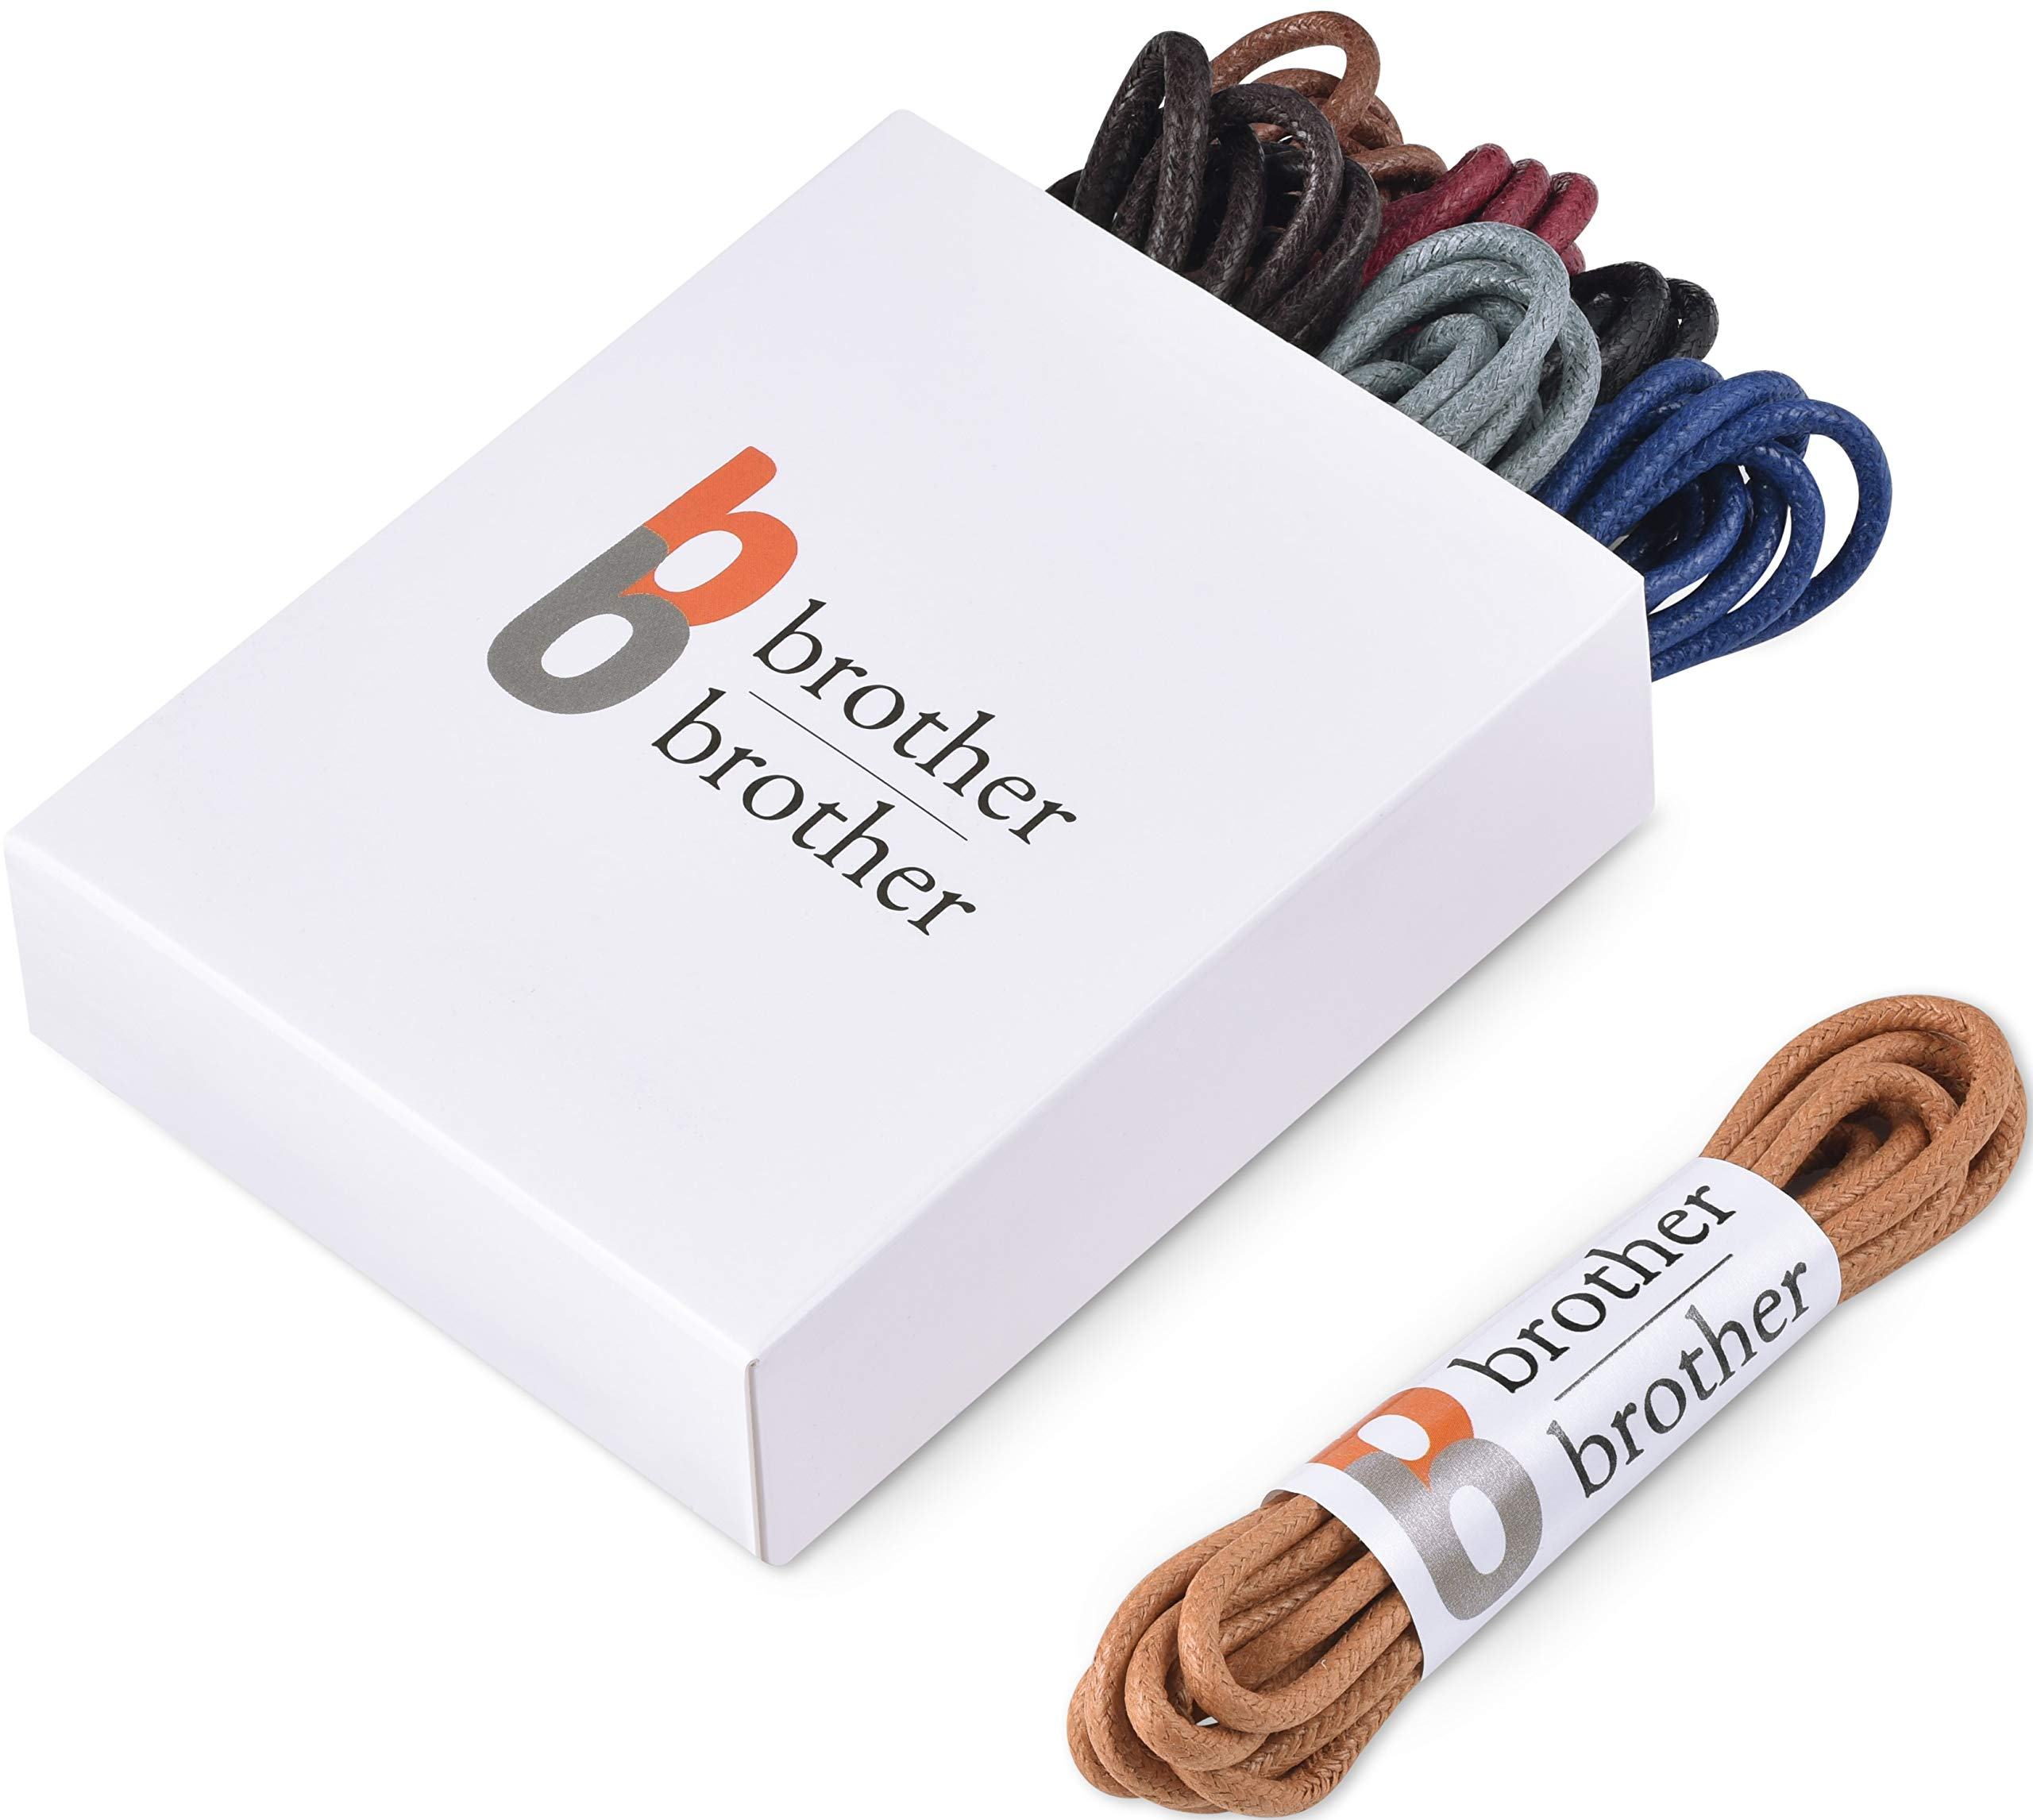 Brother Brother Colored Oxford Shoe Laces for Men (7 Pairs) | 100% Cotton Round and Waxed Shoelaces for Dress Shoes | Gift Box with Black, Burgundy, Brown, Dark Brown, Tan, Navy, and Blue Shoe Strings